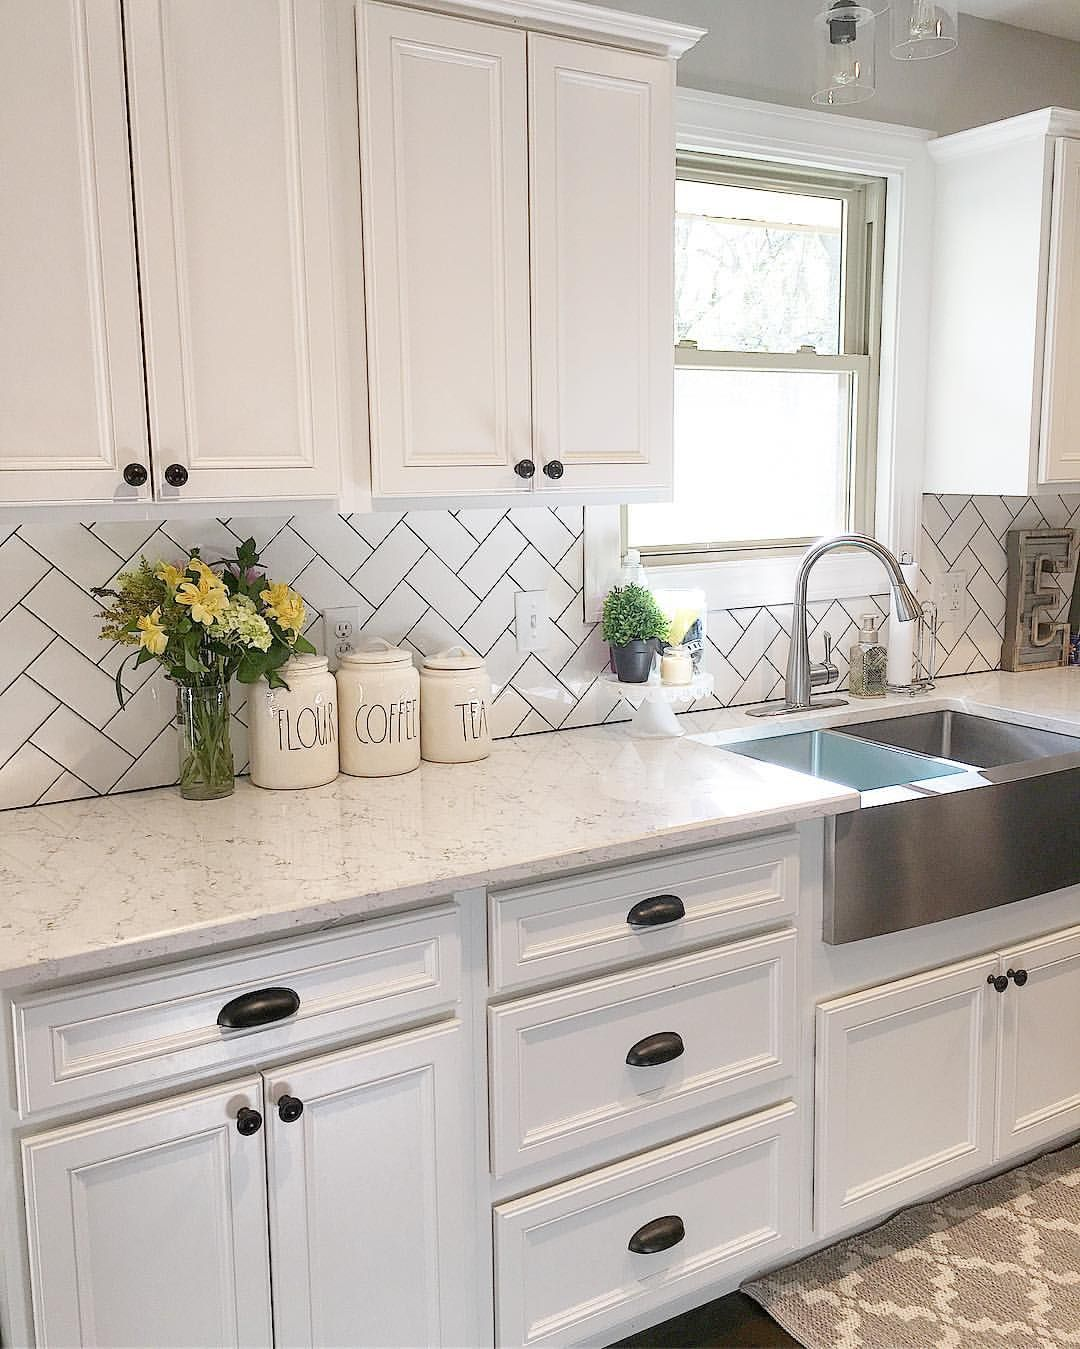 White Kitchen Kitchen Decor Subway Tile Herringbone Subway Tile Farmhouse Sink St Kitchen Cabinets Decor Kitchen Backsplash Designs Kitchen Cabinet Design